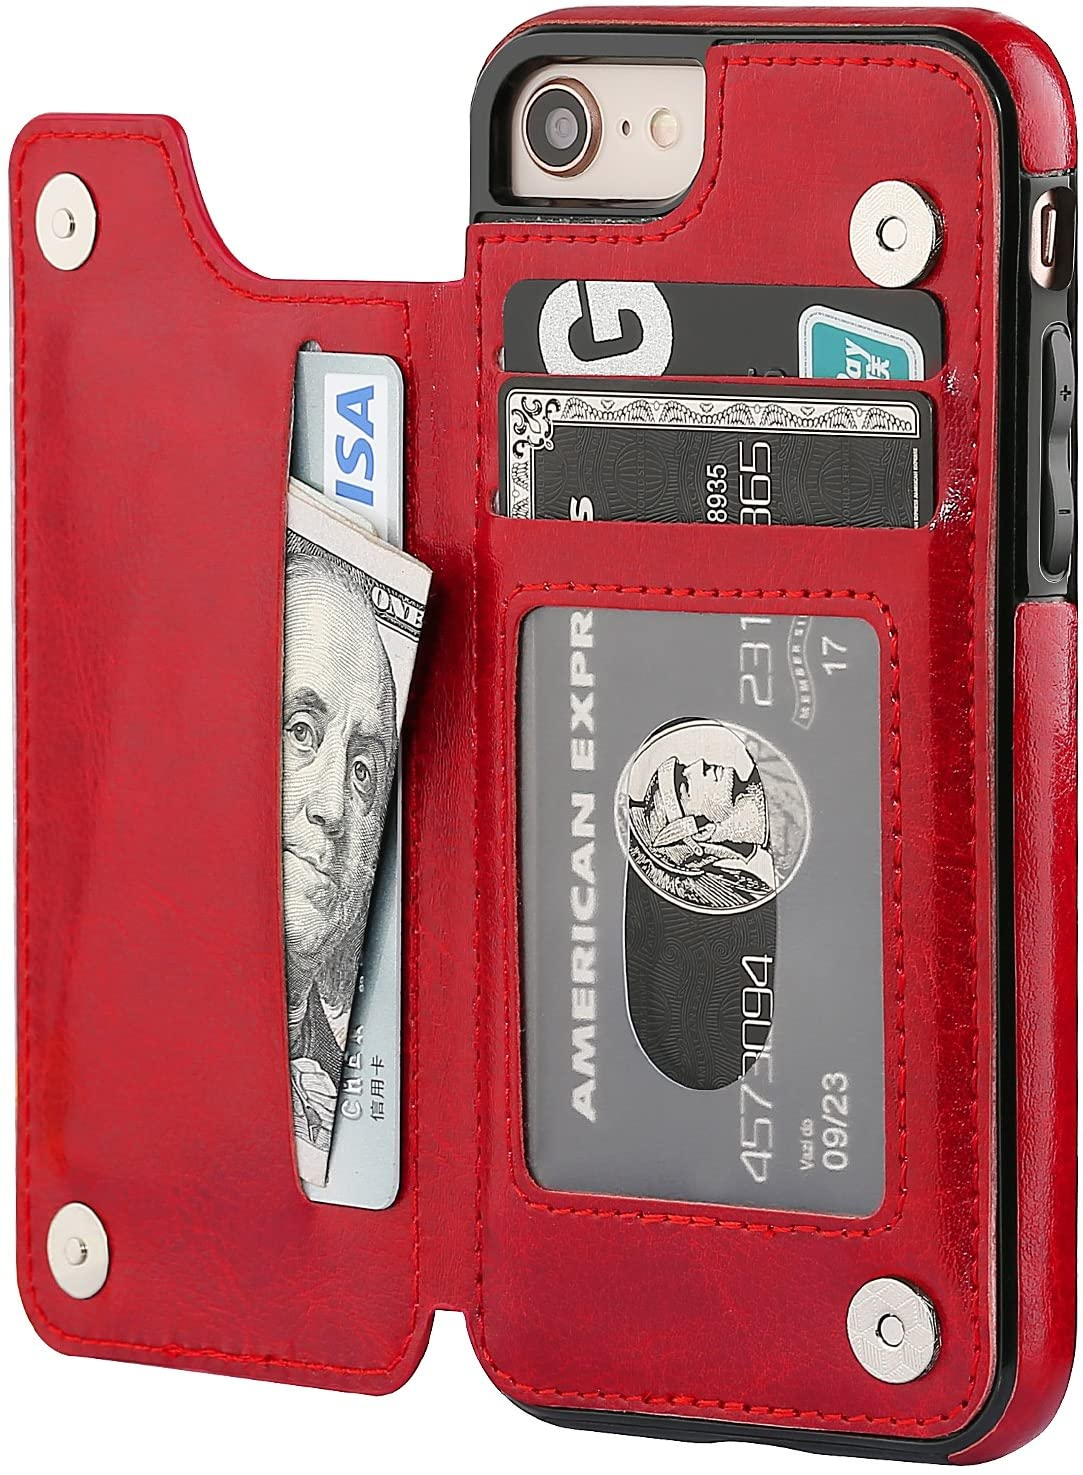 OT ONETOP iPhone 8 Wallet Case with Card Holder, iPhone 7 Case iPhone SE(2020) Wallet Premium PU Leather Kickstand Card Slots,Double Magnetic Clasp and Durable Shockproof Cover 4.7 Inch(Red)